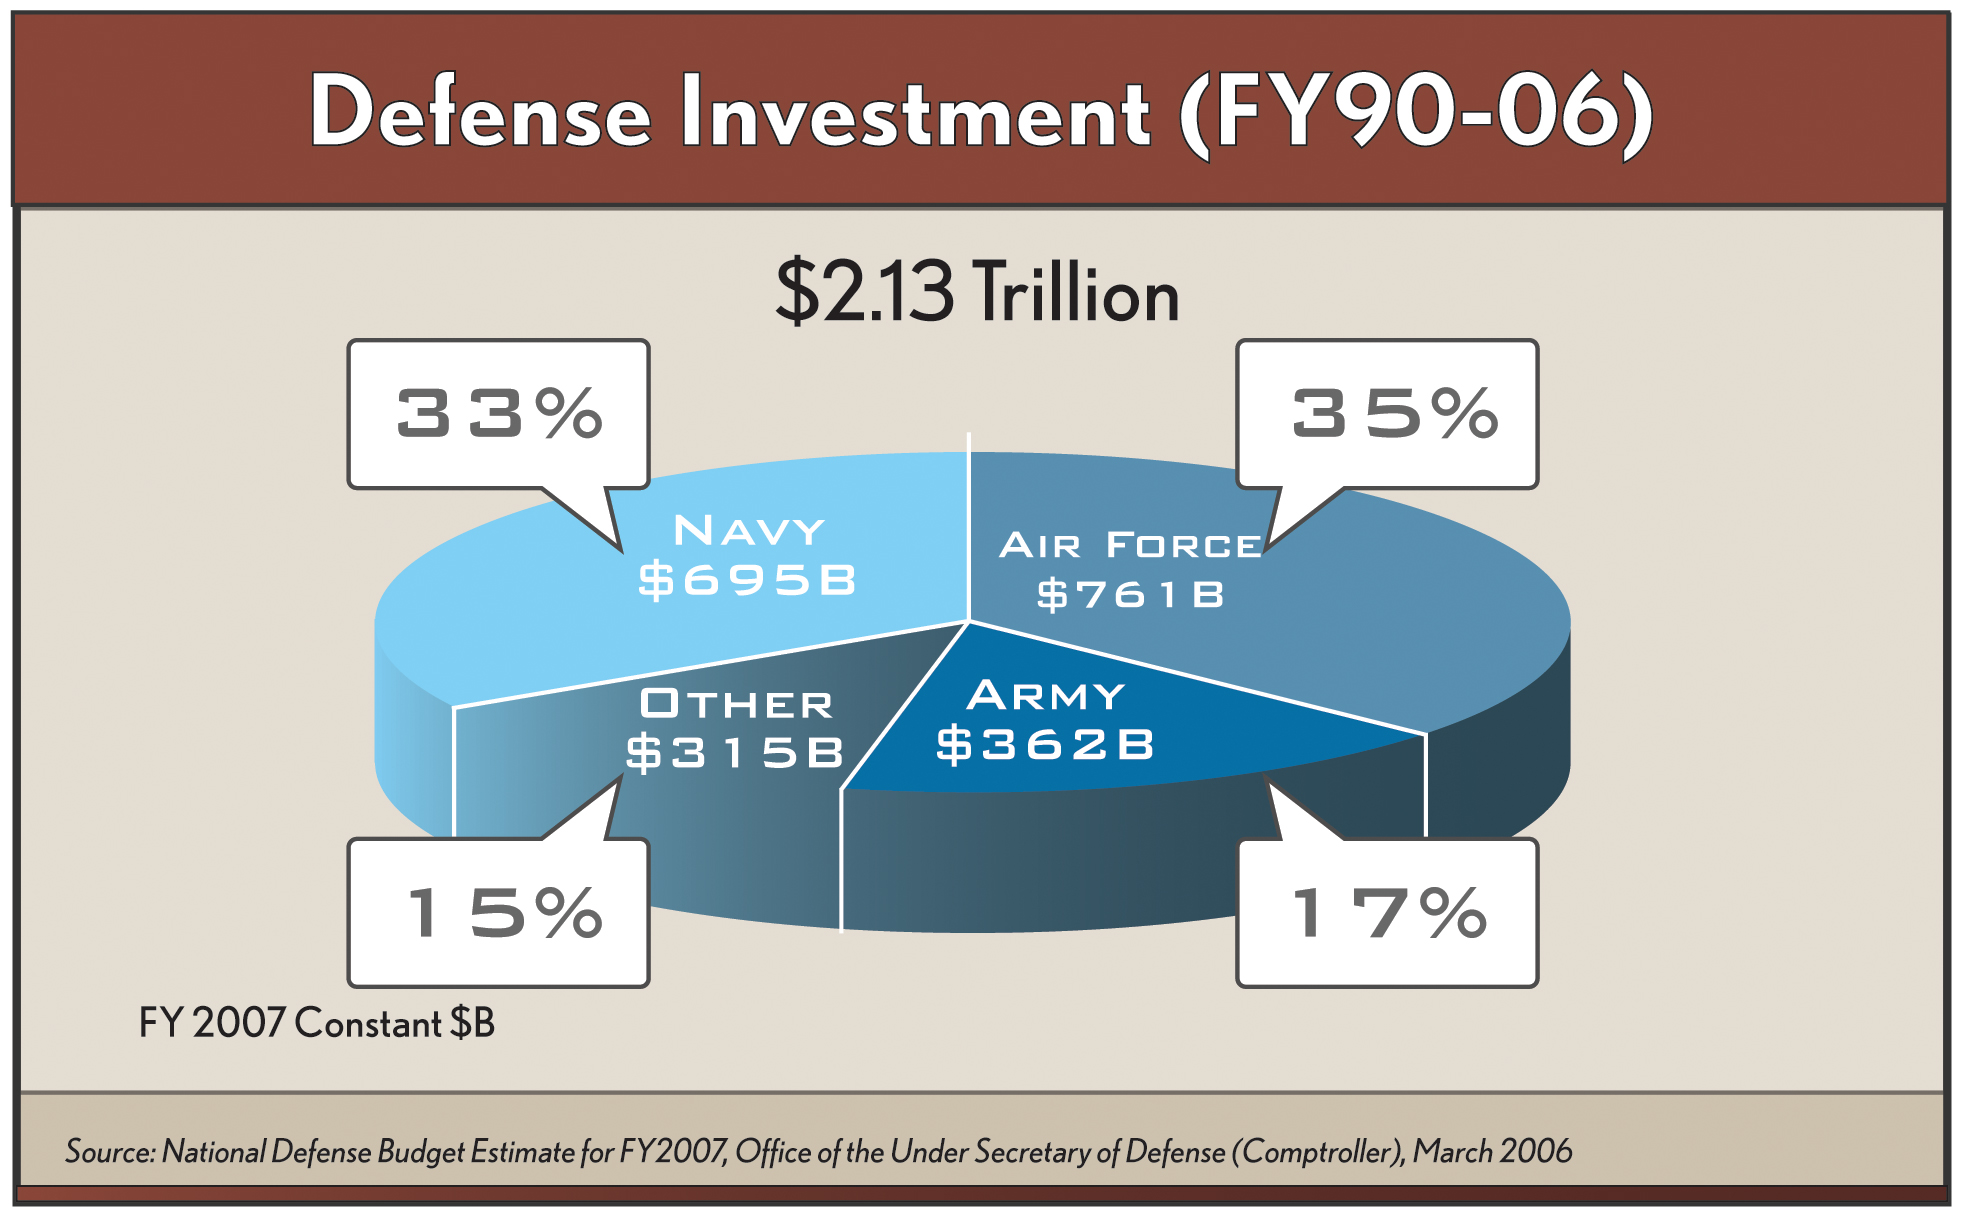 Military Size Chart: Defense Investment (FY90 - FY06).jpg - Wikimedia Commons,Chart